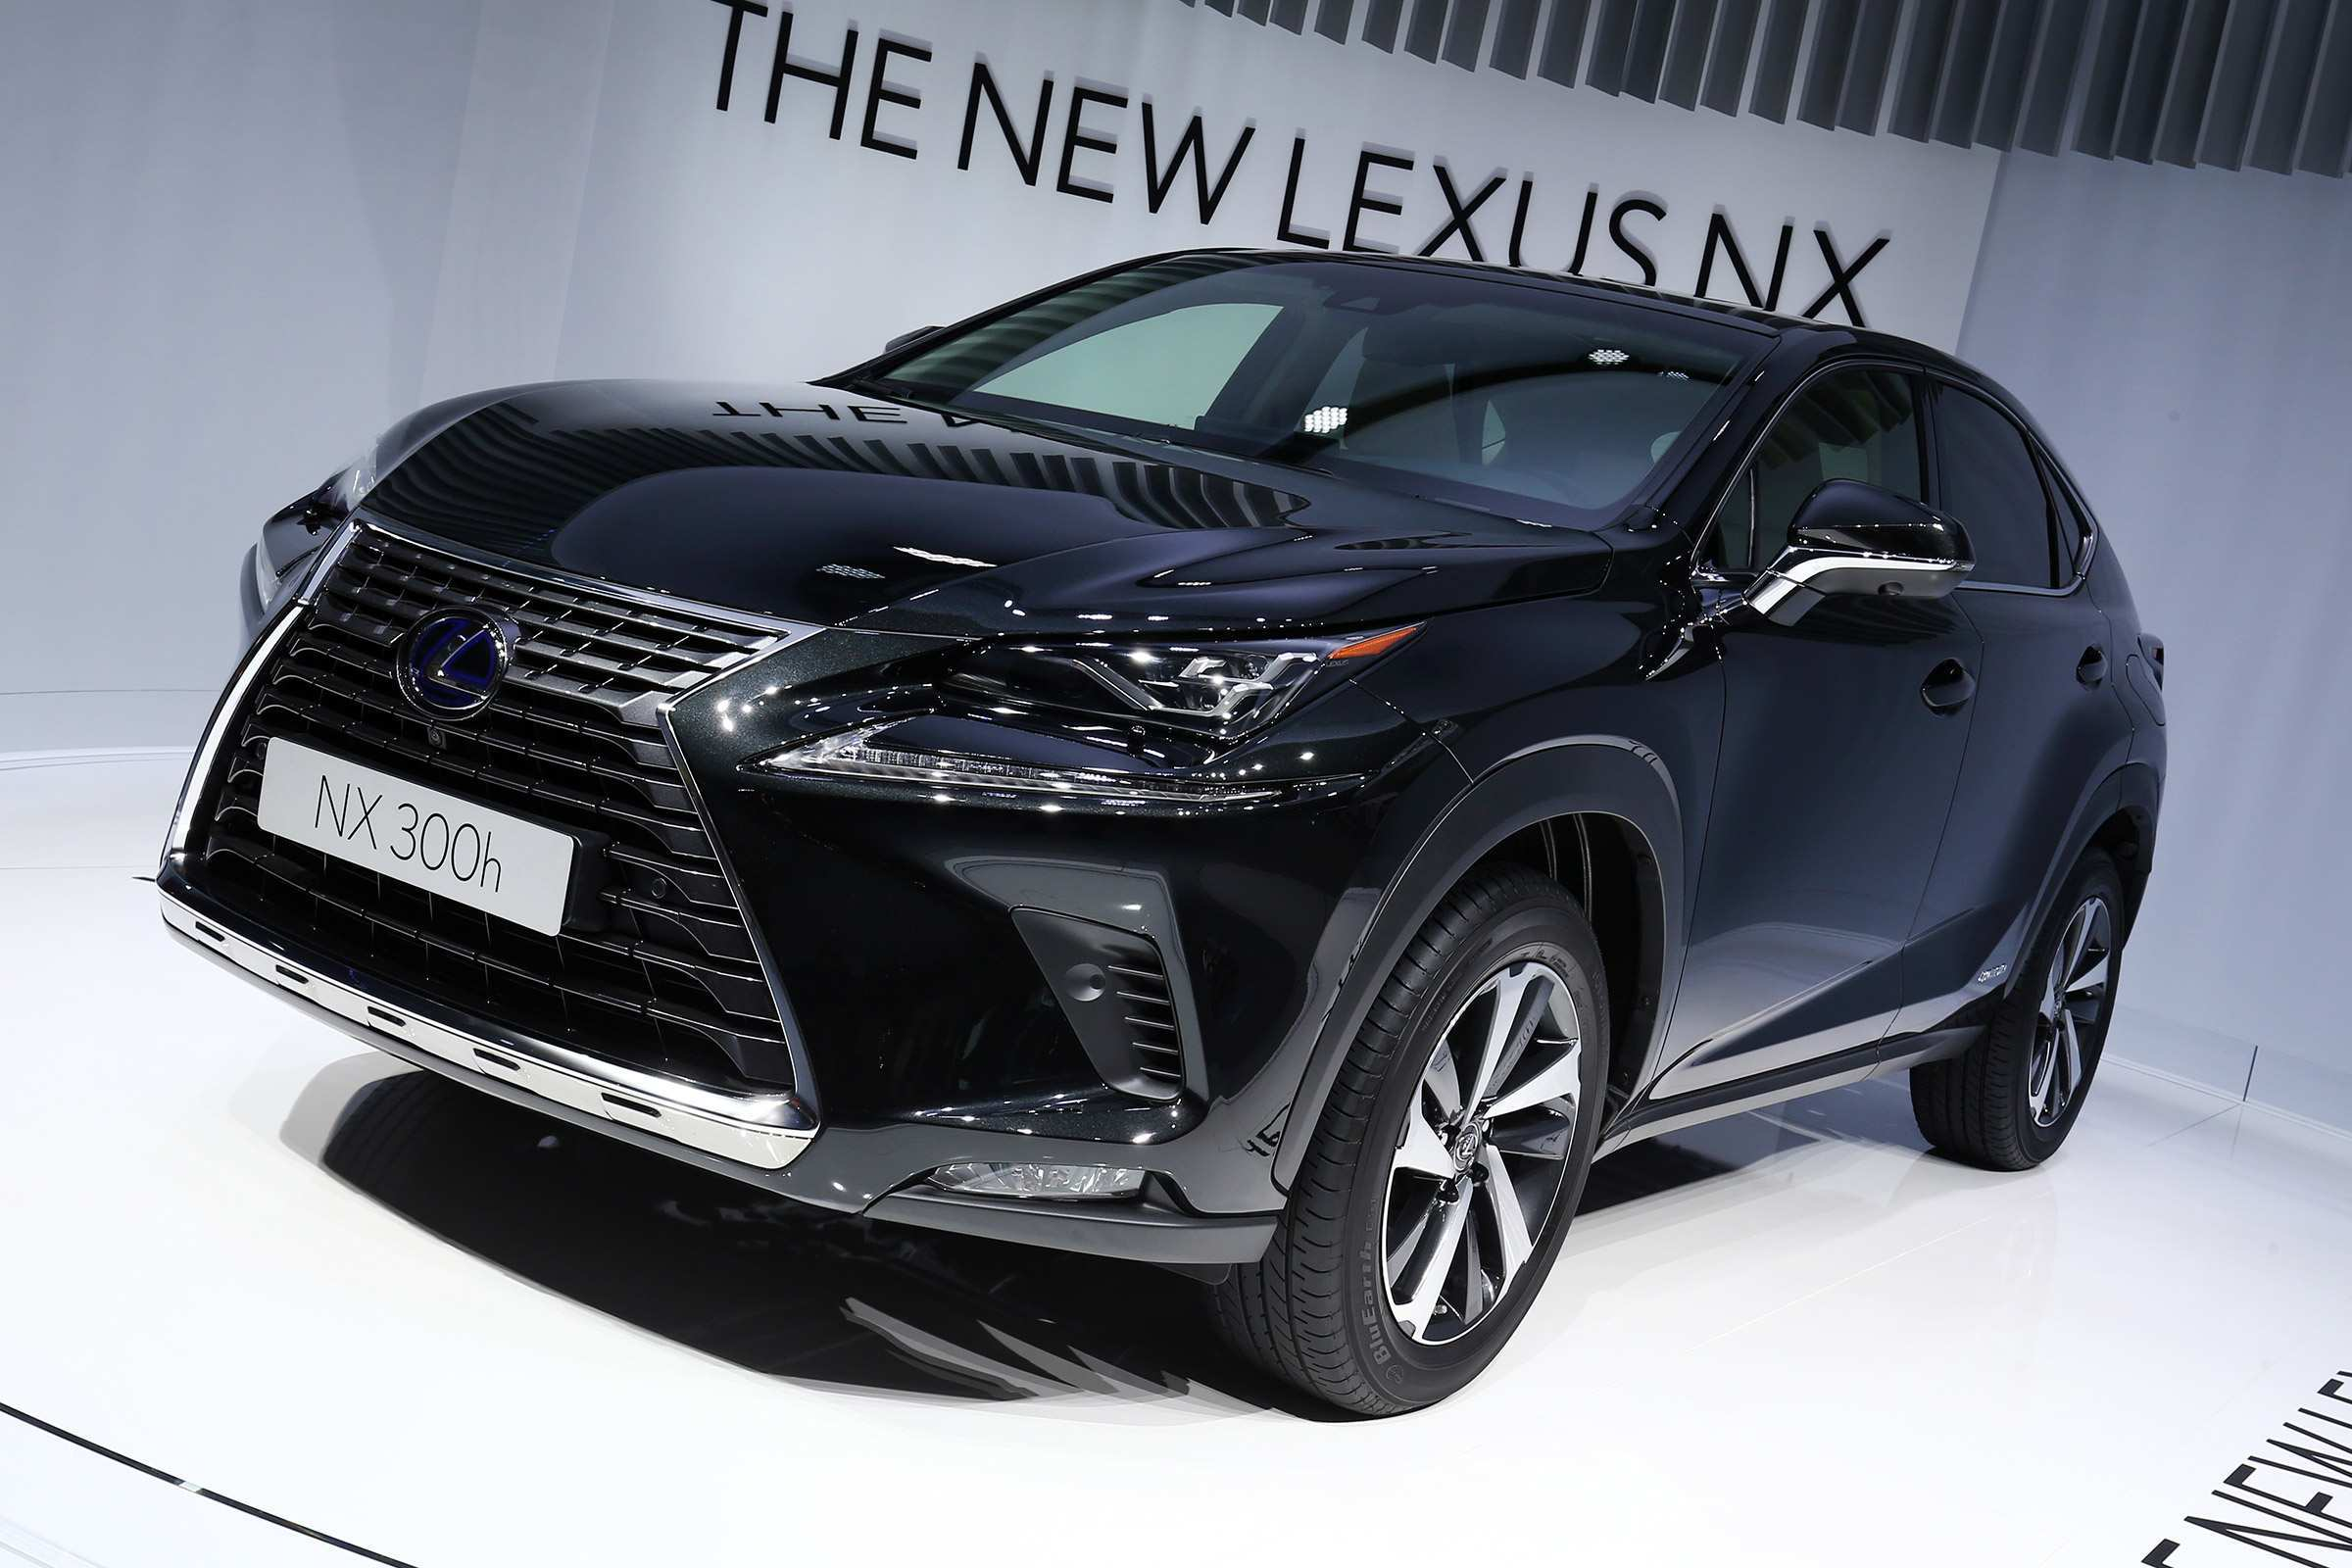 80 Best Review 2020 Lexus Nx Updates Reviews with 2020 Lexus Nx Updates